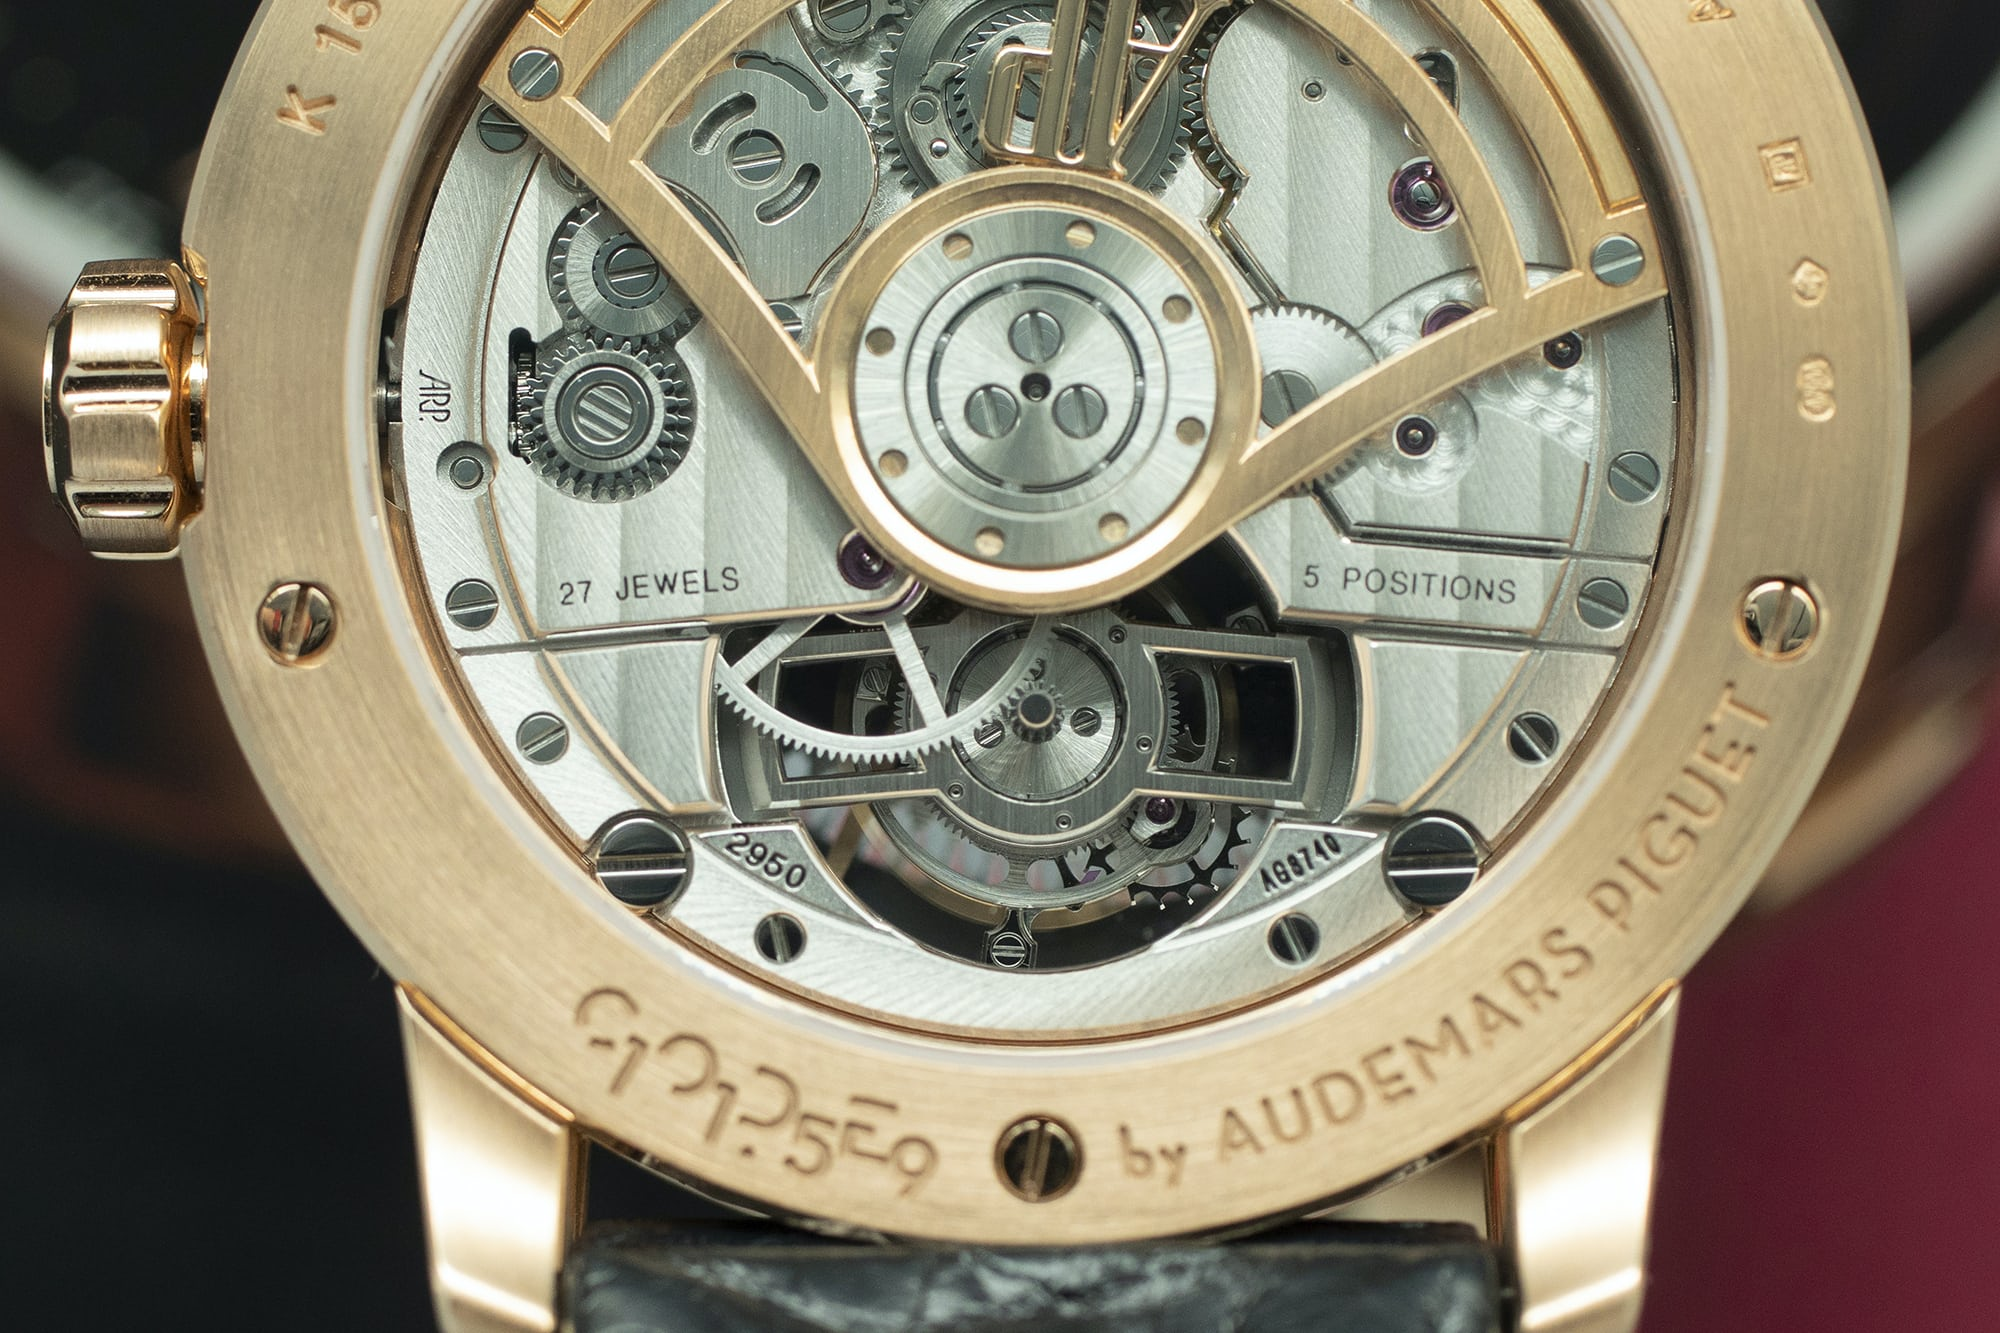 code-1159-audemars-piguet-flying-Tourbillon-cal-2950